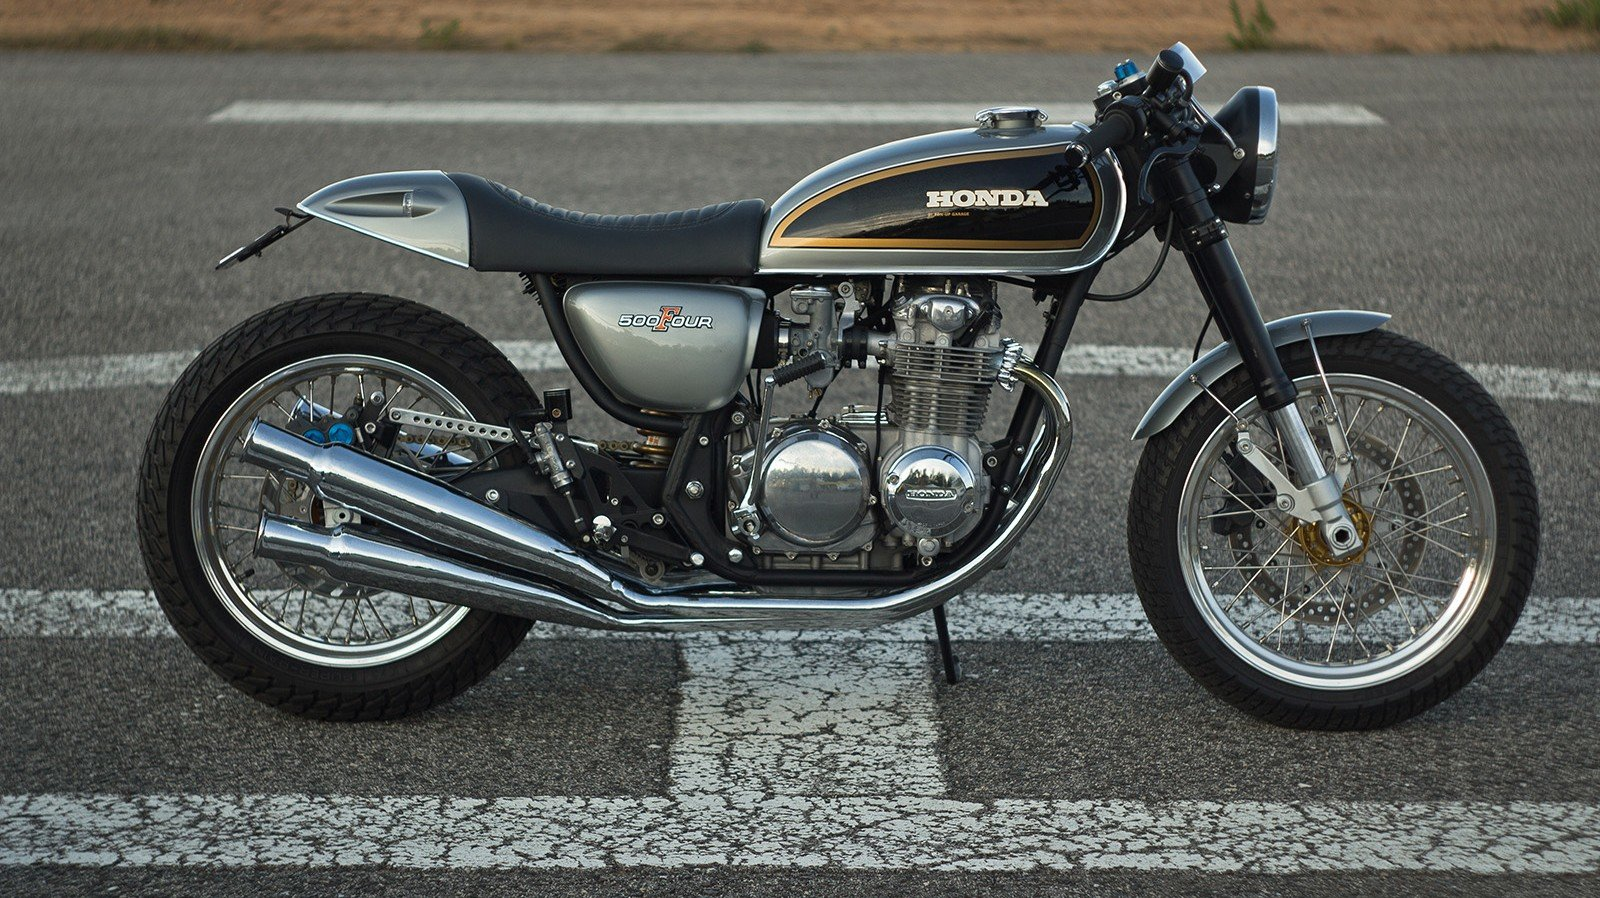 1974 Honda CB 500 Four Tribute by Ton-up Garage For Sale (picture 1 of 6)